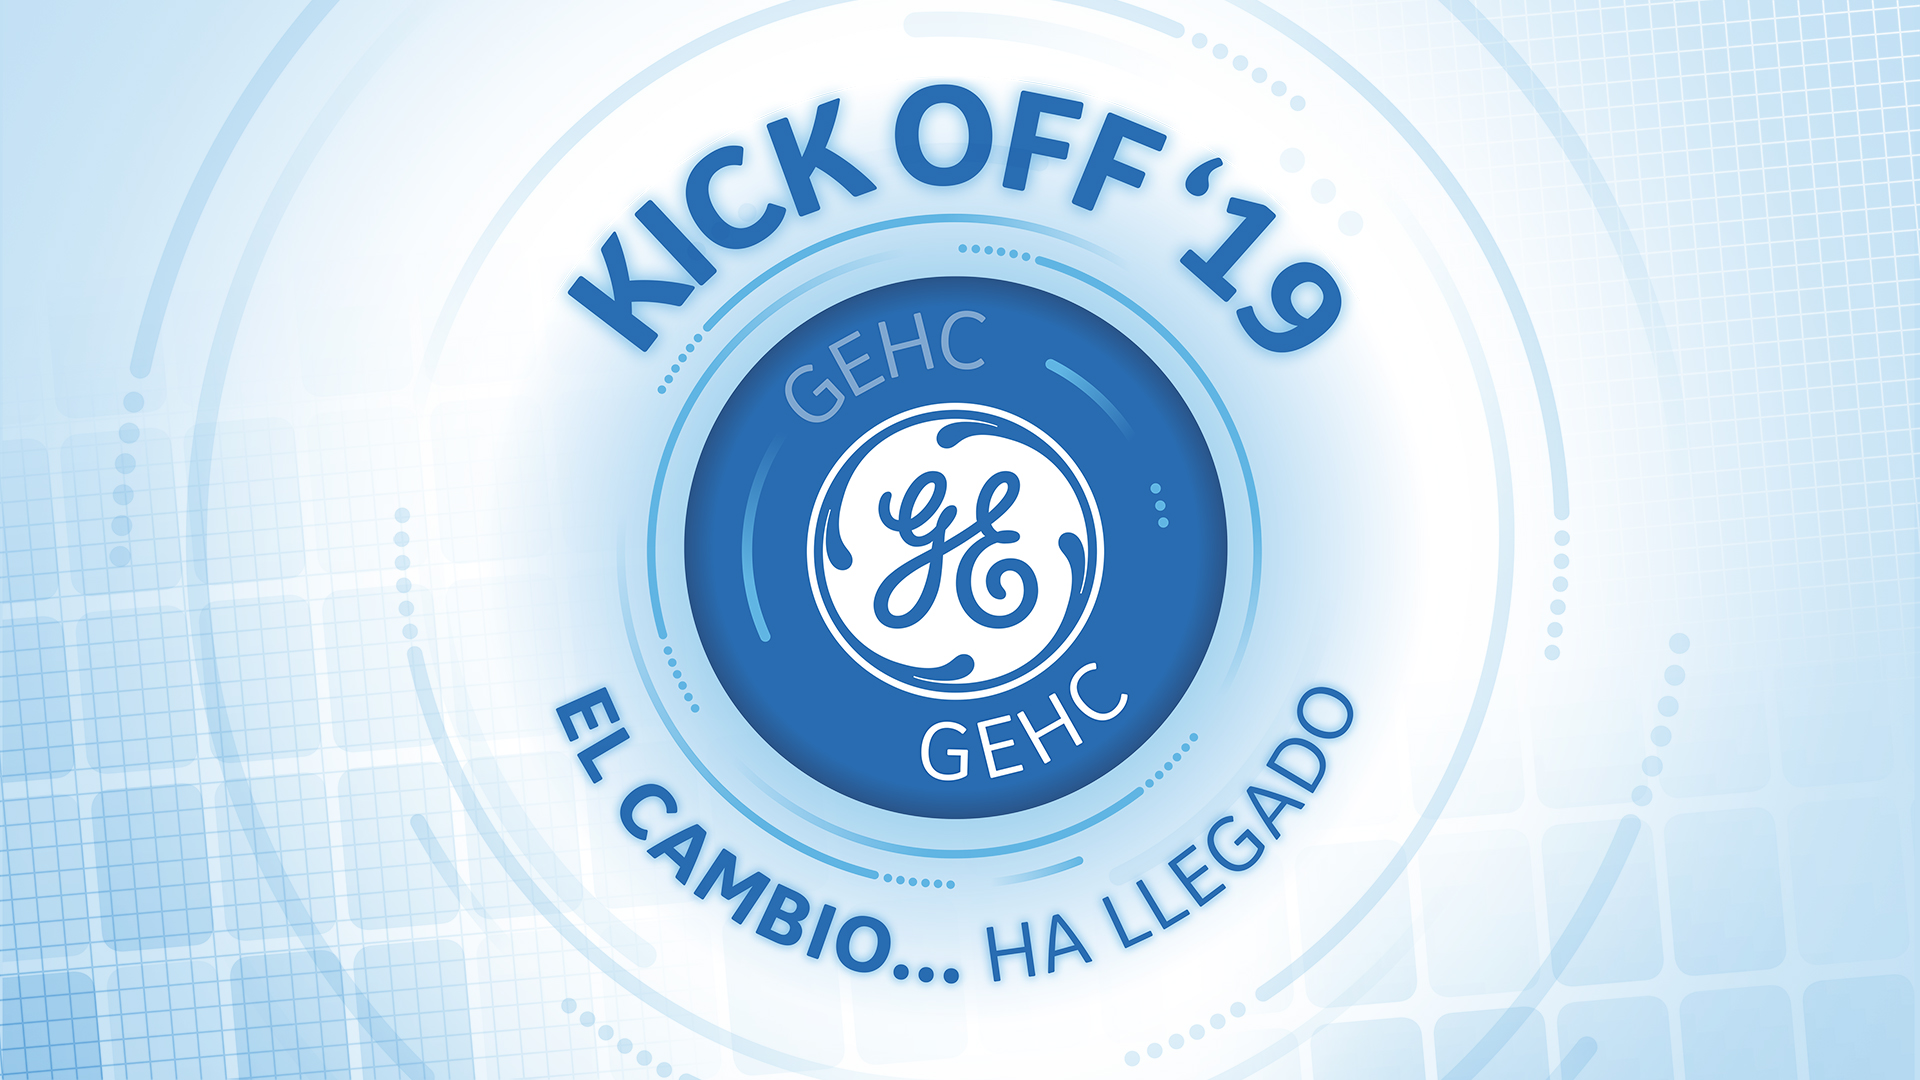 KickOff General Electric 2019